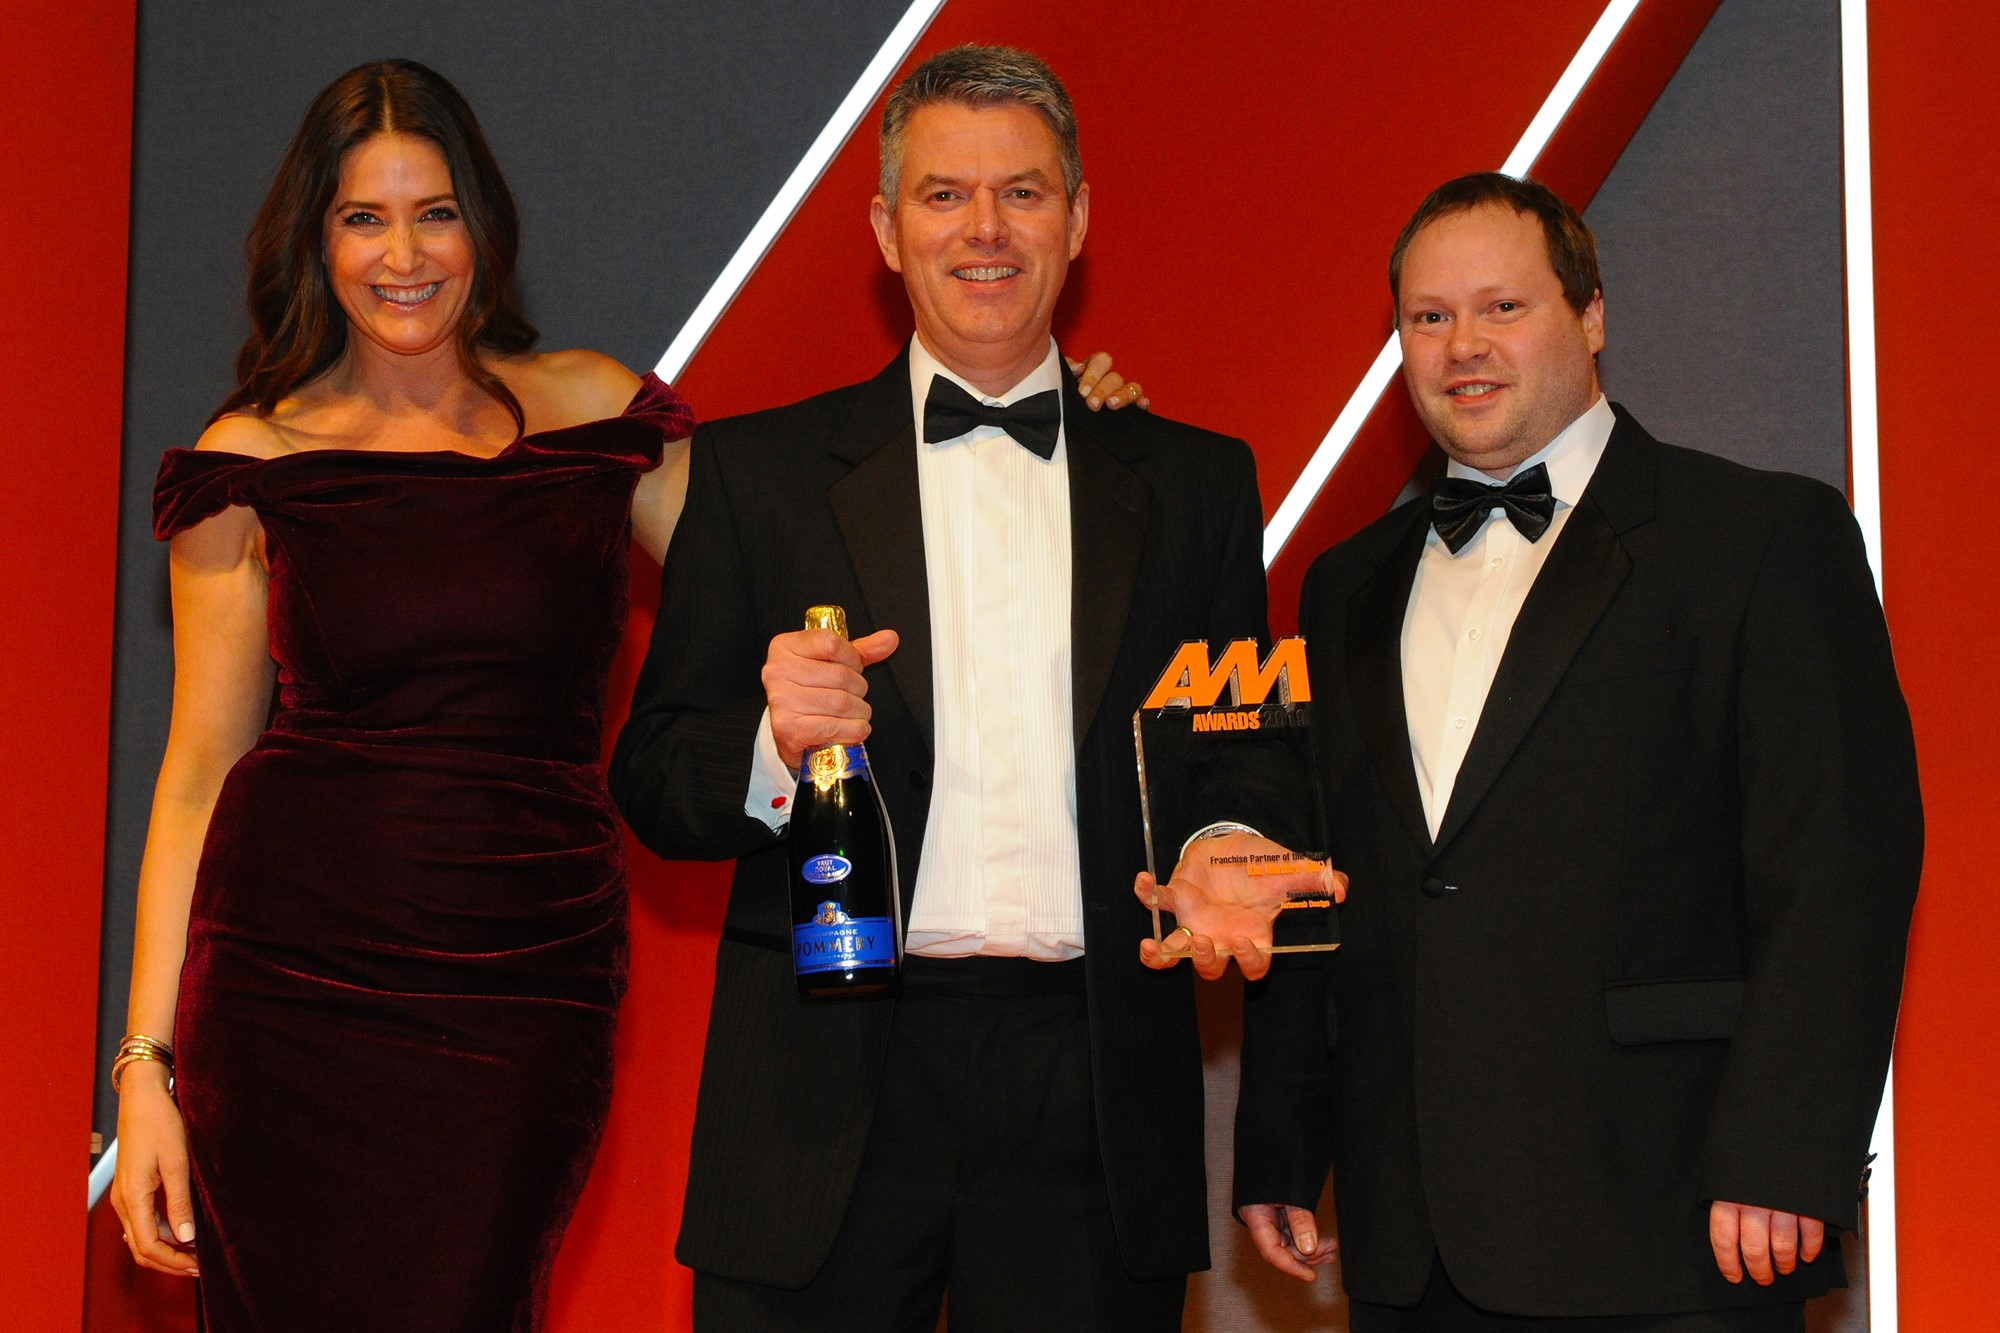 Paul Philpott, president and chief executive, Kia  Motors (UK), accepts the award from Martin Dew,  digital solutions director, Autoweb Design, right and host Lisa Snowdon, left